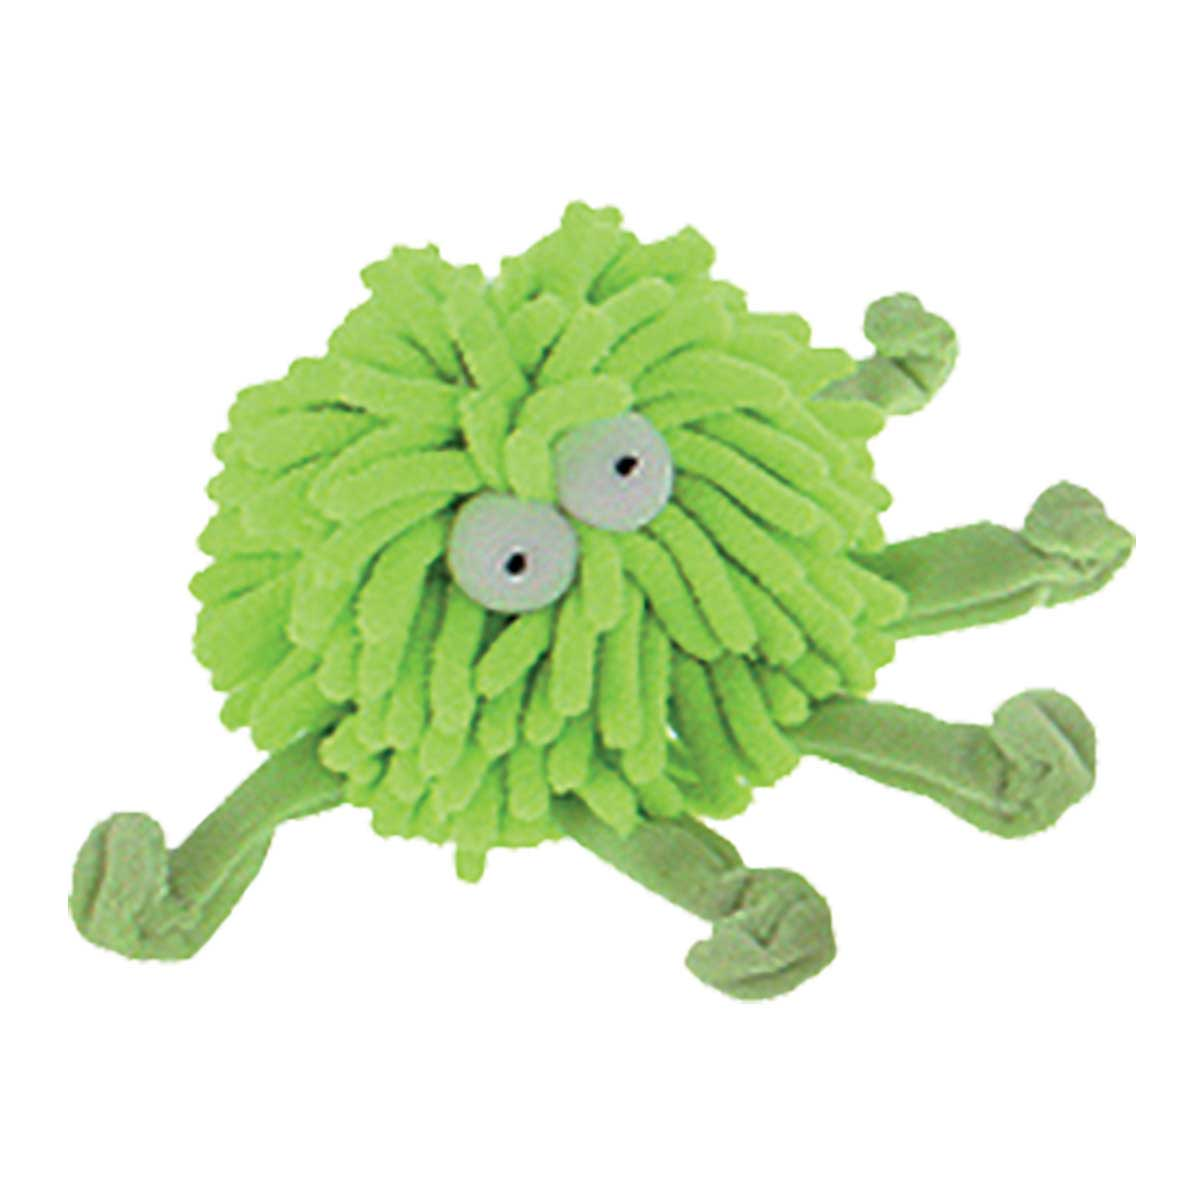 Green Multipet Sea Shammies Octopus Dog Toy - 6 inch